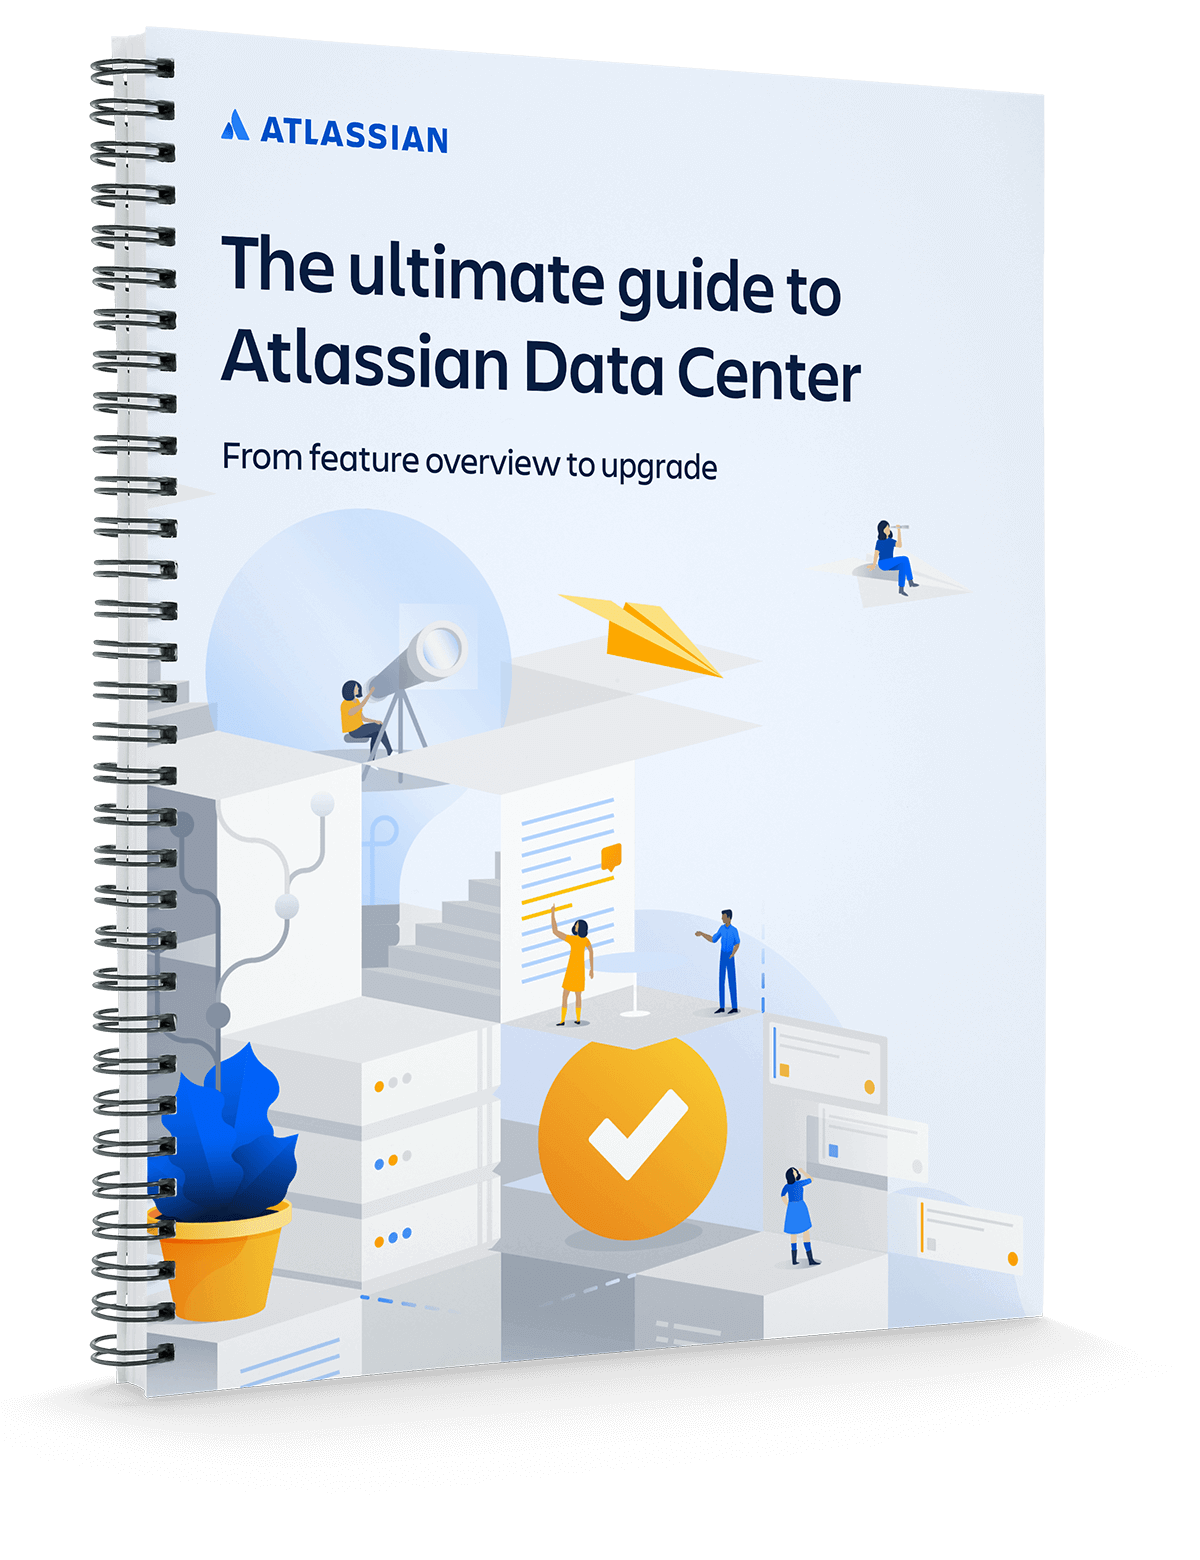 Couverture du fichier PDF « Guide ultime sur Atlassian Data Center »